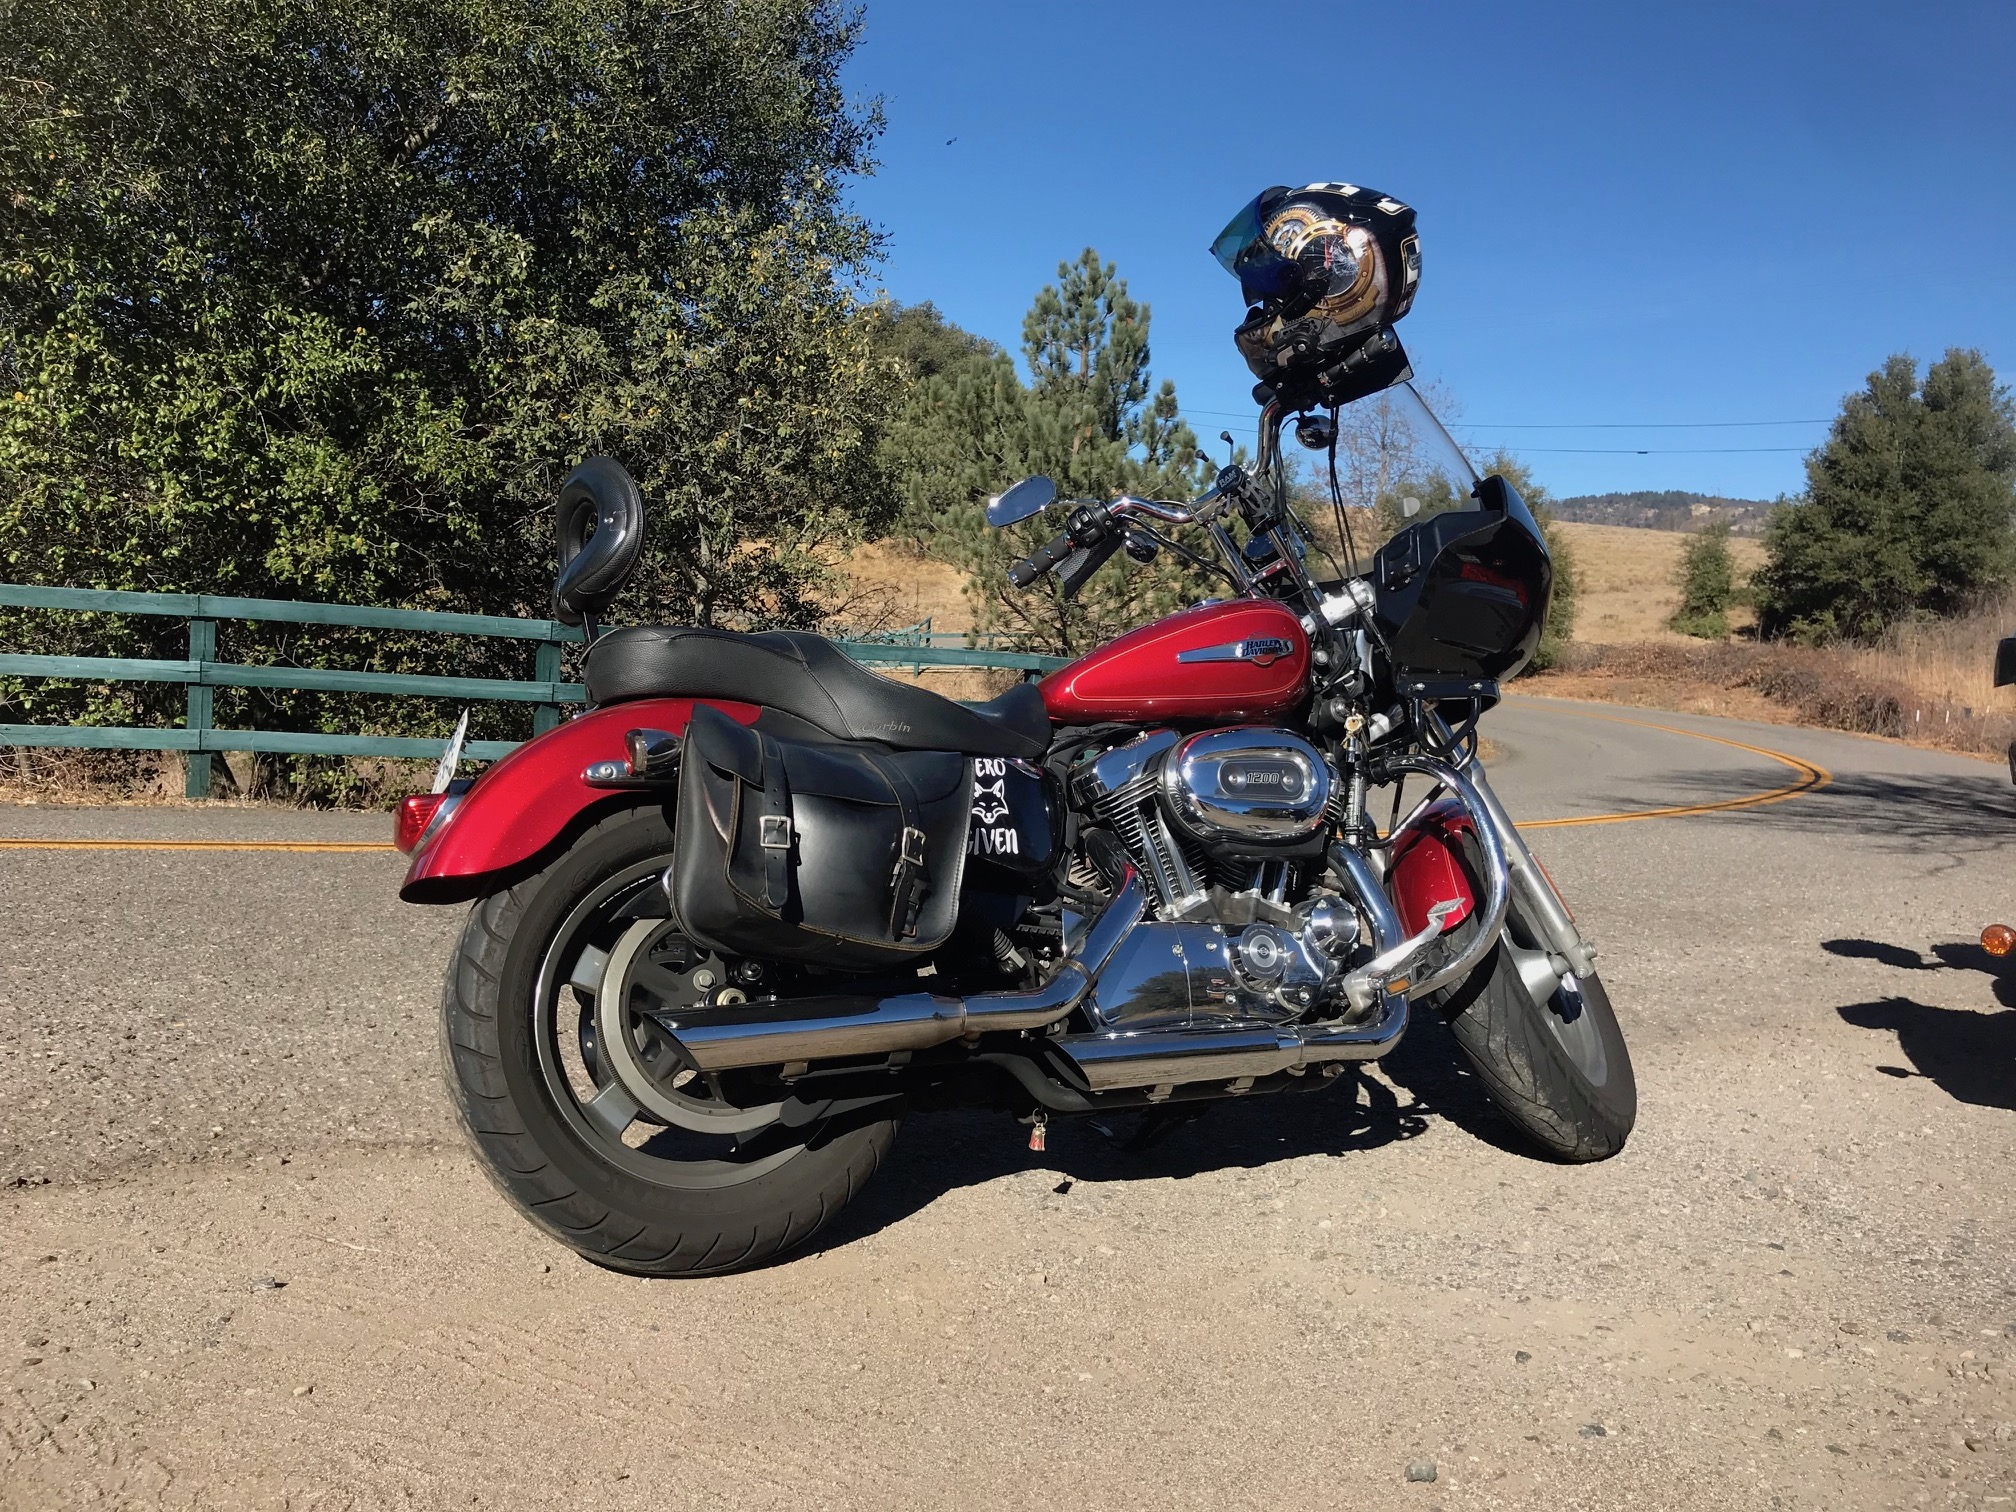 sportster with a fairing